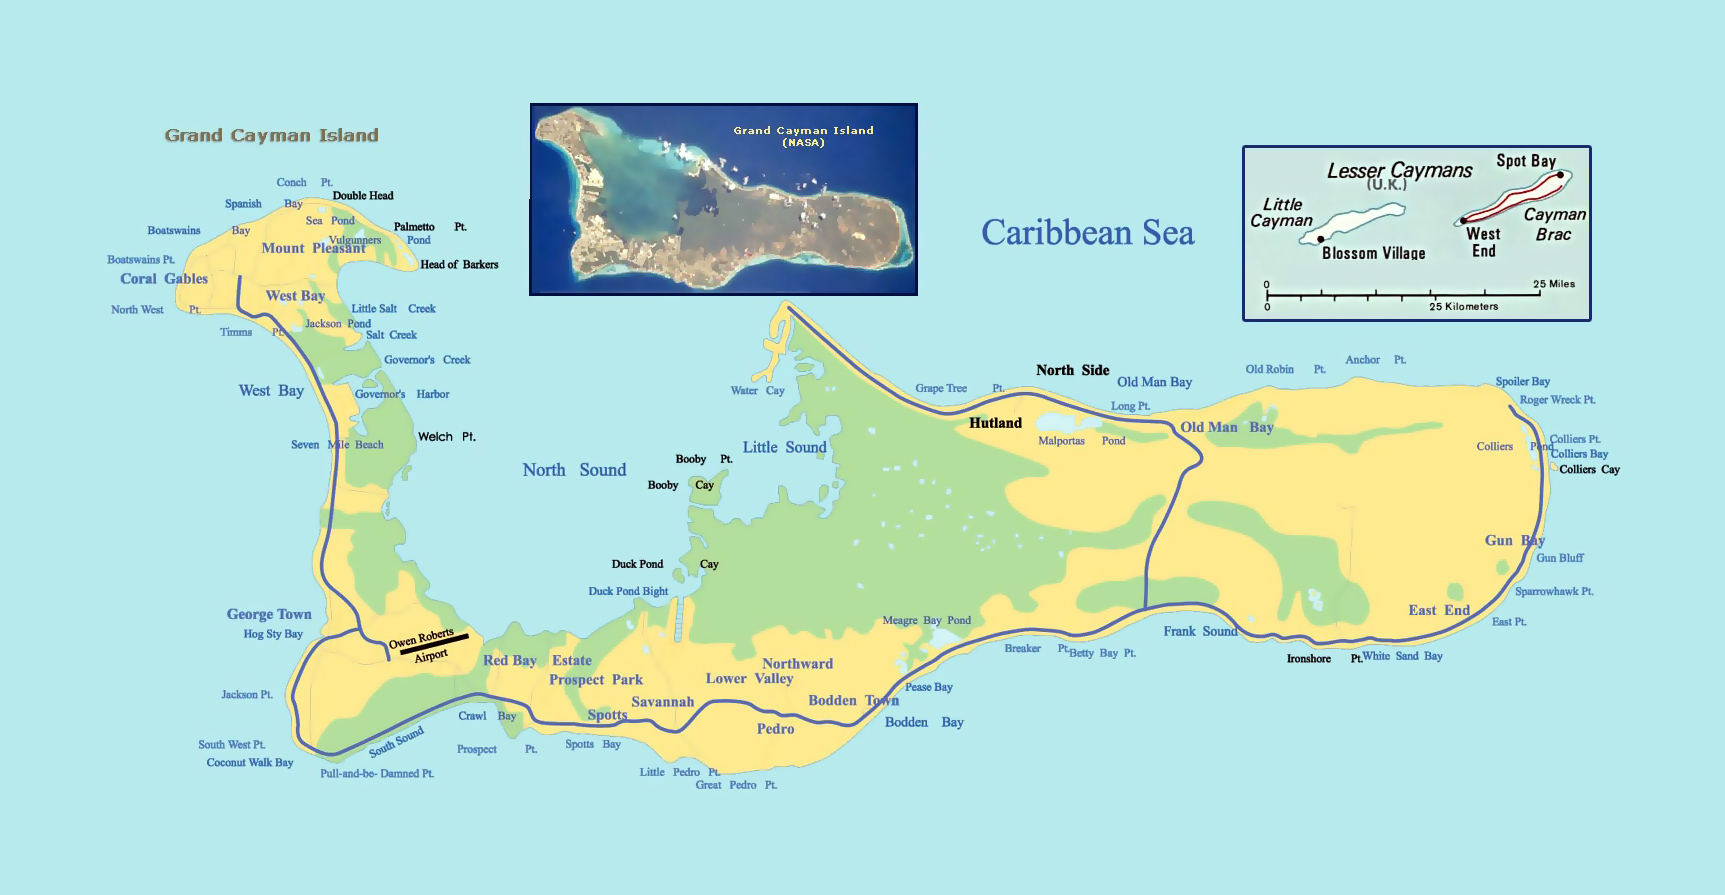 Road Map Of Grand Cayman Island